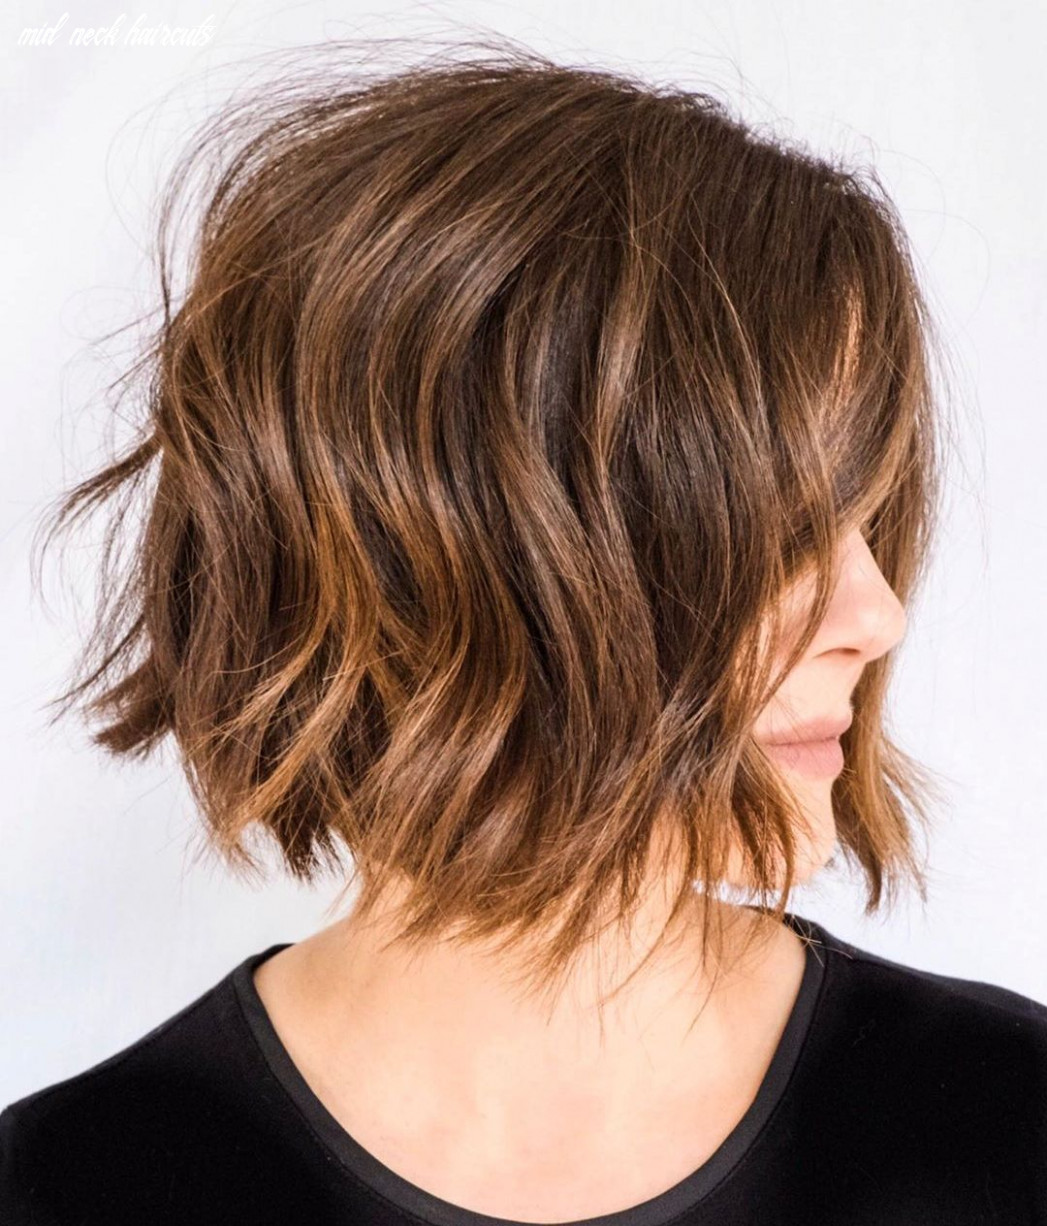 10 ideas to showcase your neck length hair at its best hair adviser mid neck haircuts